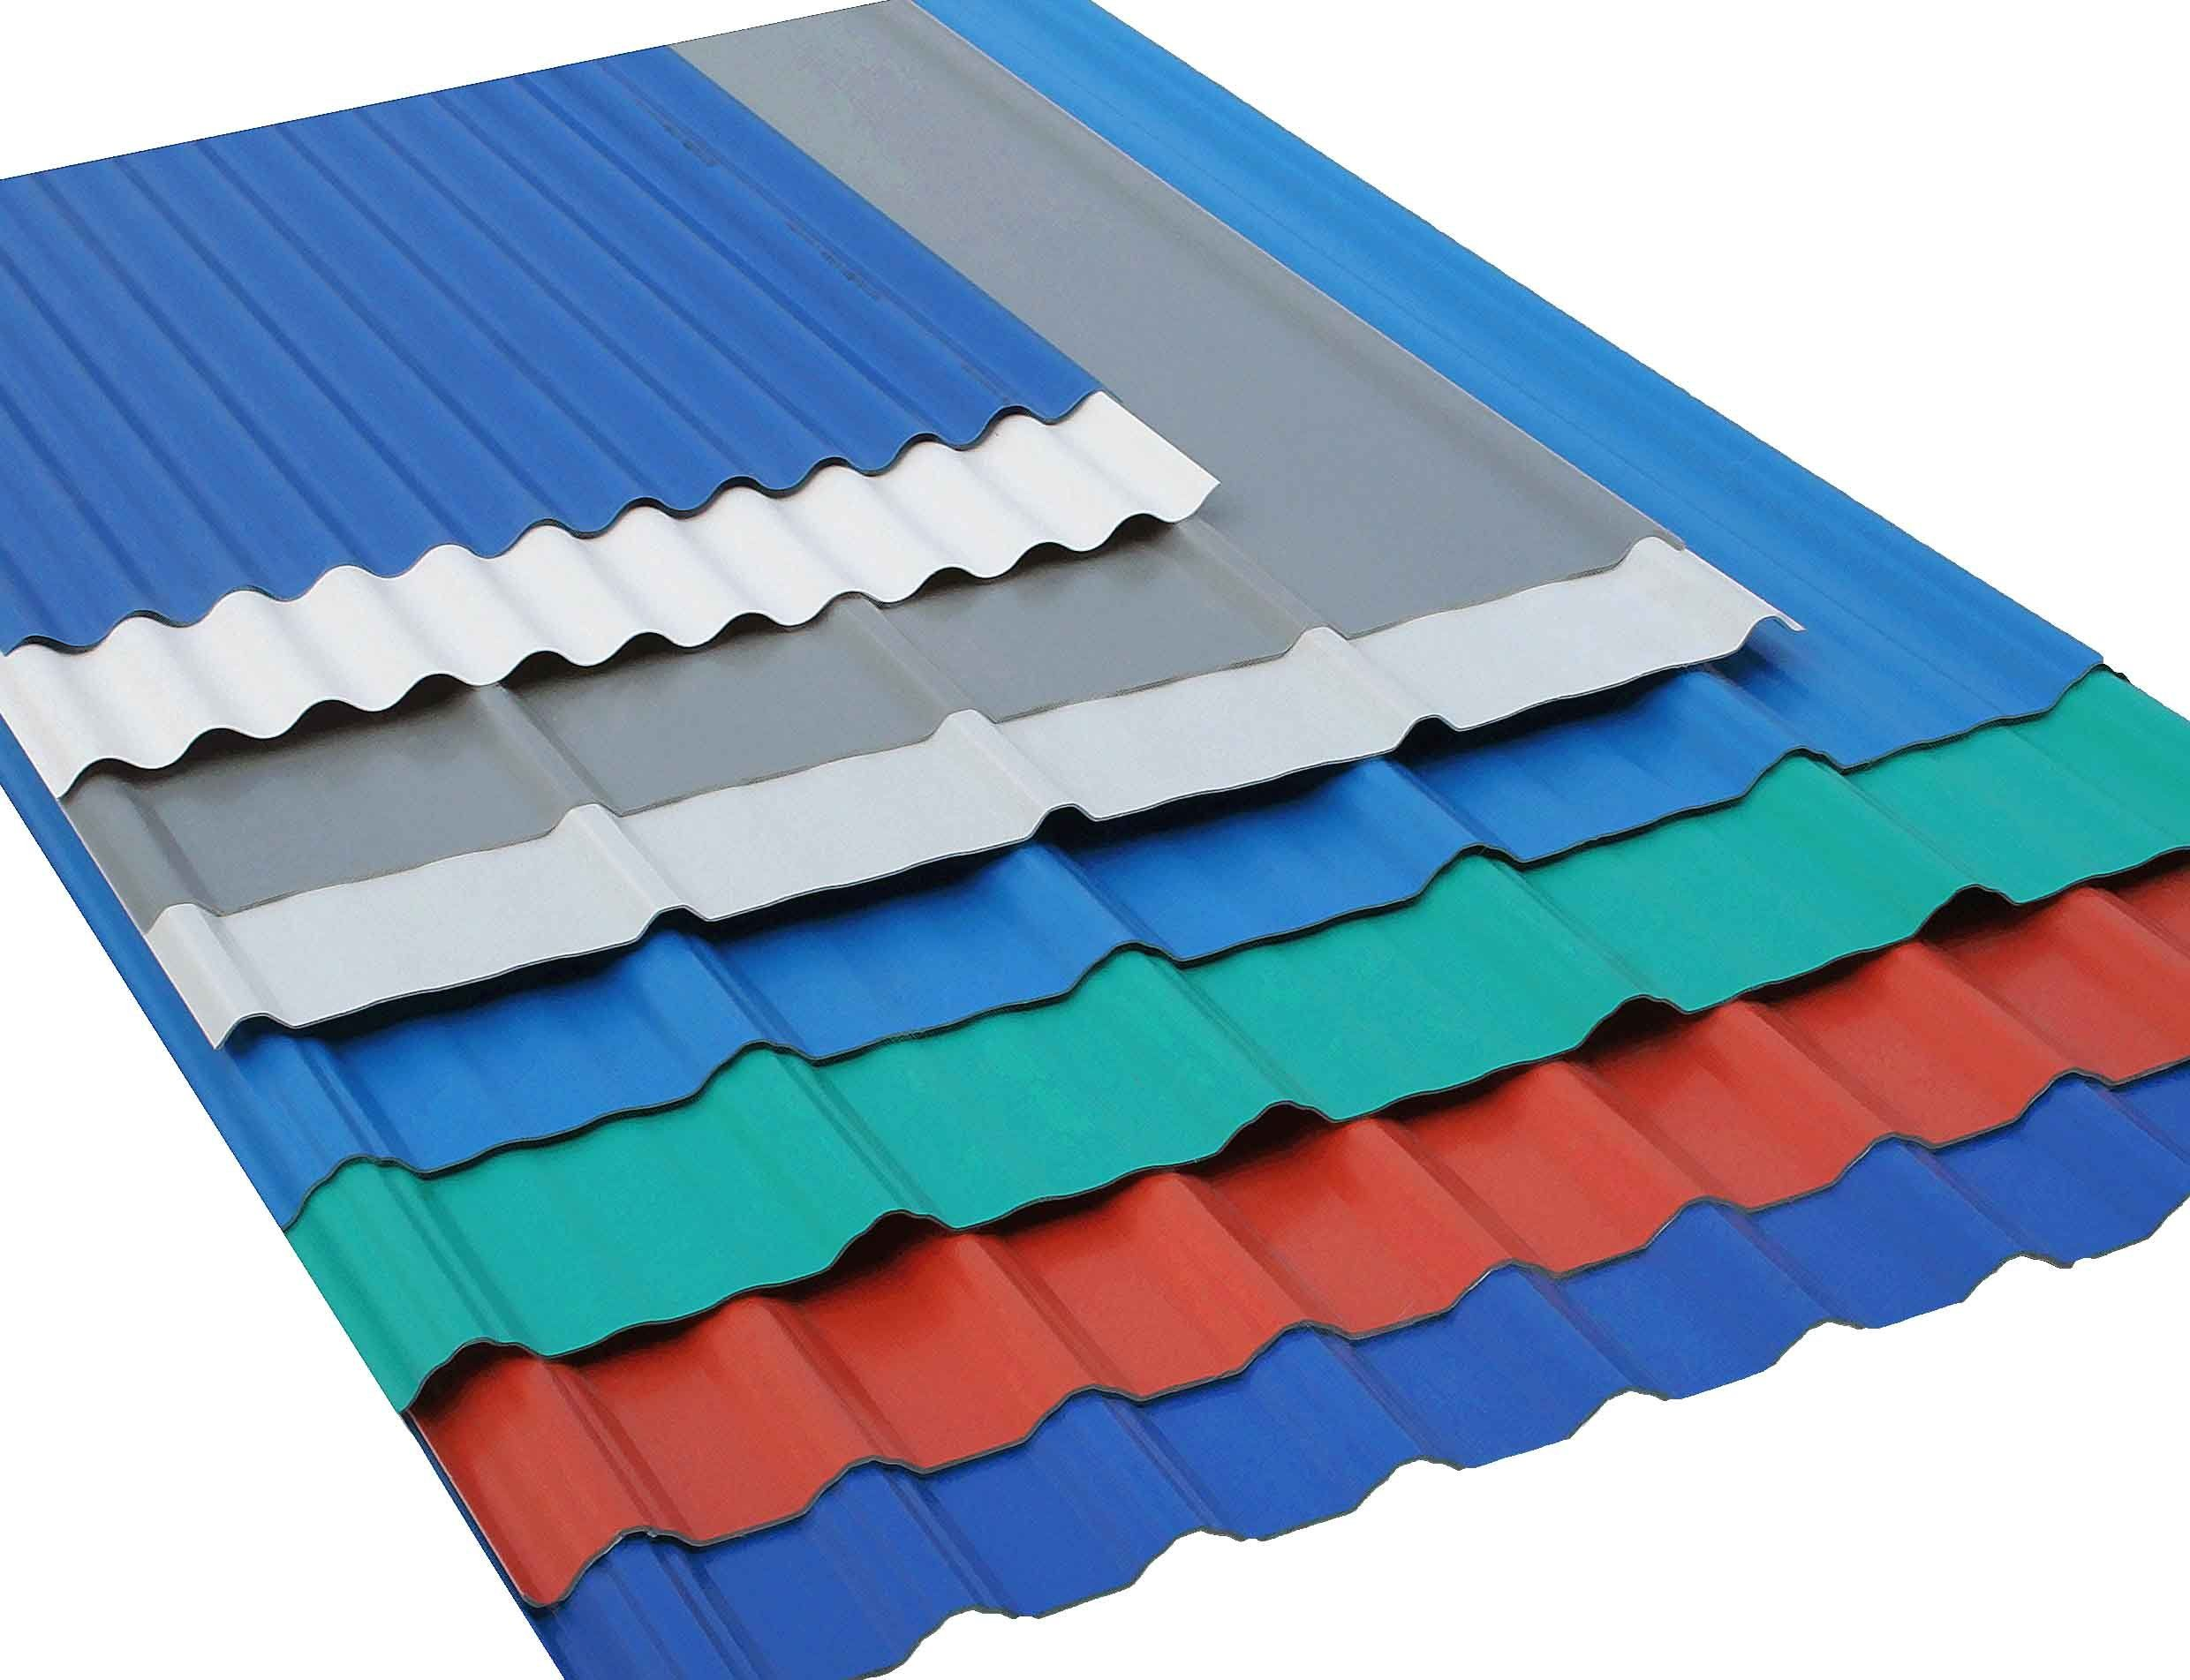 Pin By Seg Steel On Corrugated Steel Tiles Roofing Sheets Pvc Roofing Metal Roof